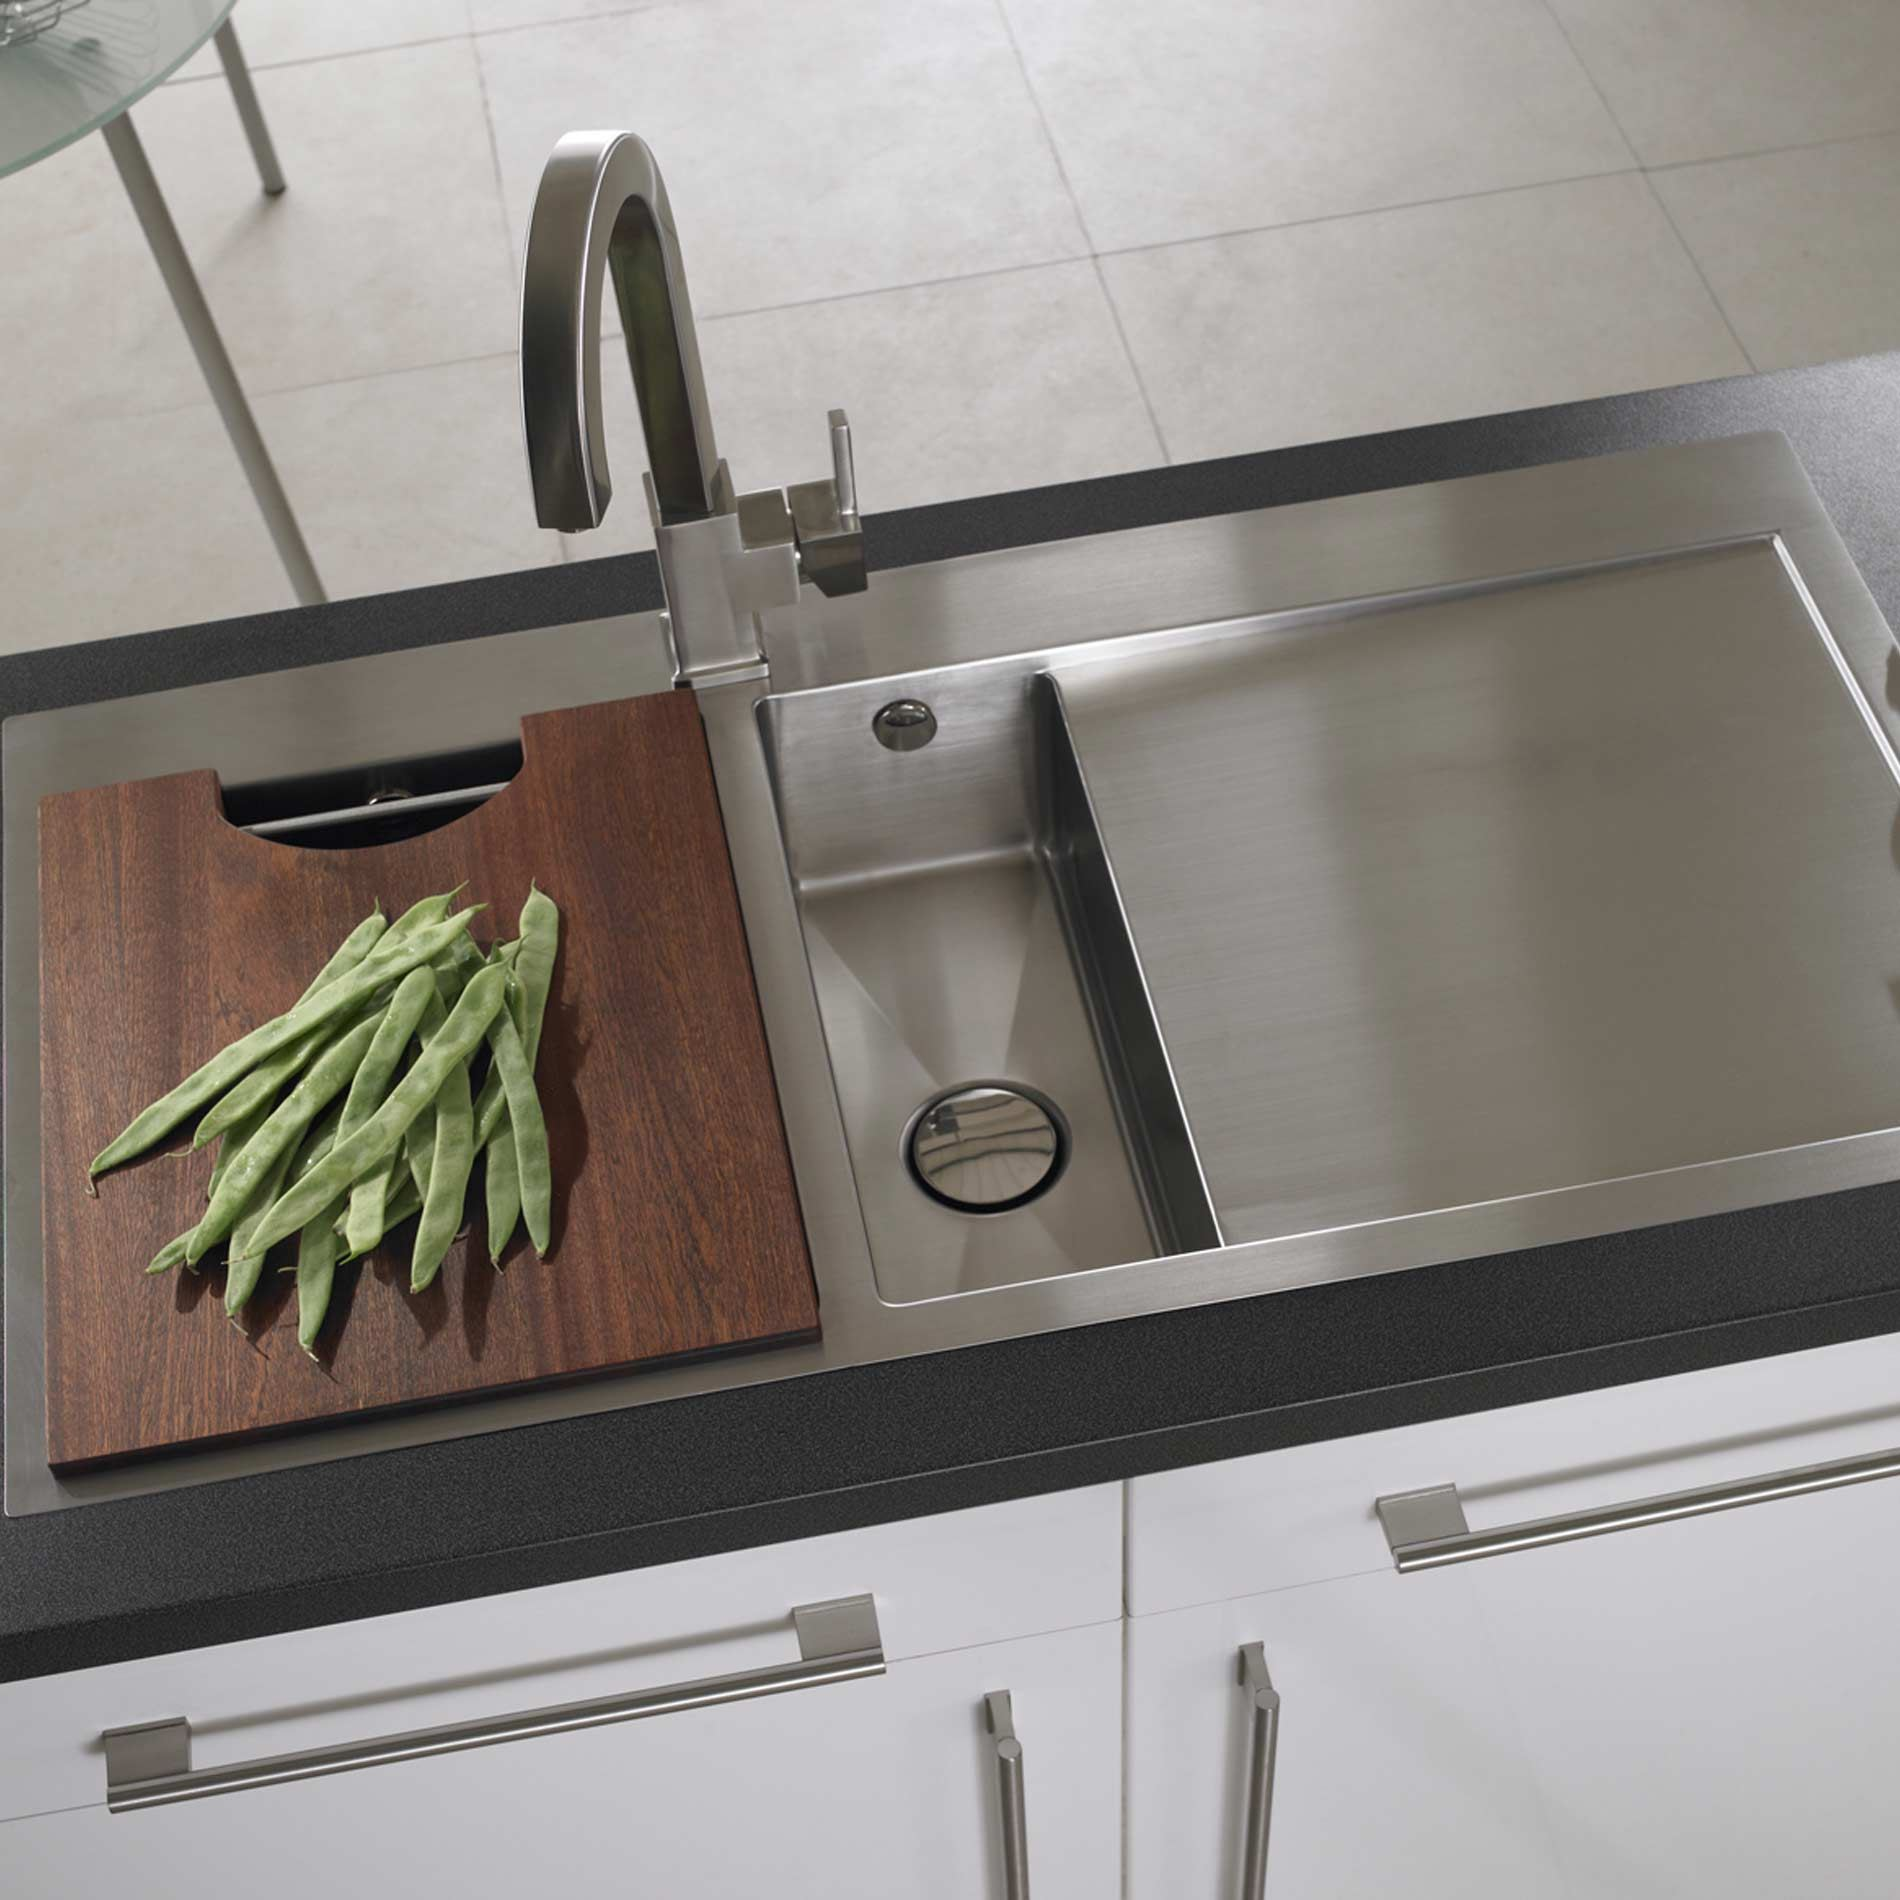 picture of vantage 1 5 stainless steel sink astracast  vantage 1 5 stainless steel sink   kitchen sinks  u0026 taps  rh   kitchensinksandtaps co uk